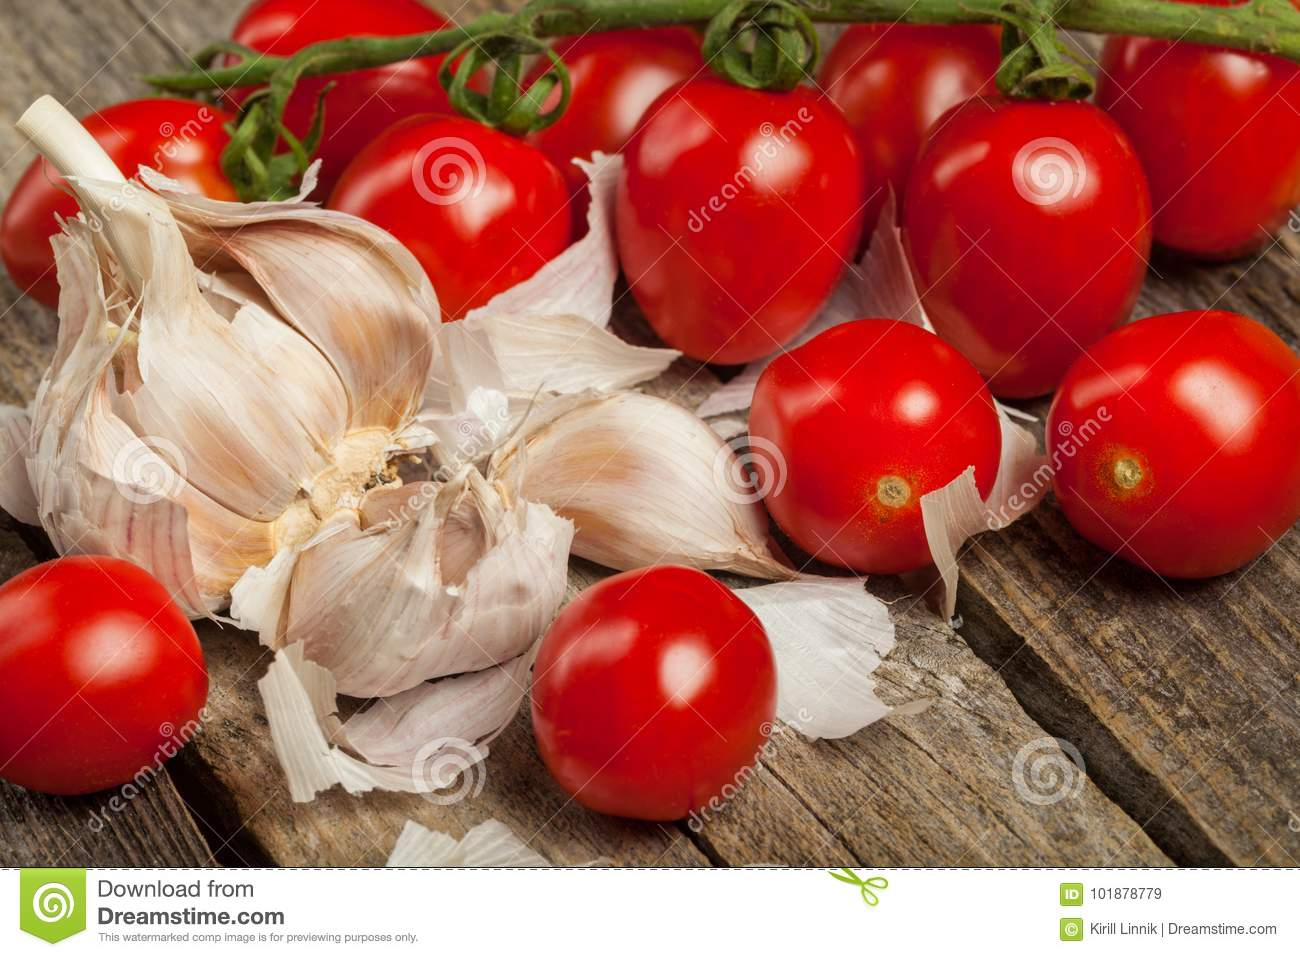 Download Tomatoes and garlic stock image. Image of clove, freshness - 101878779